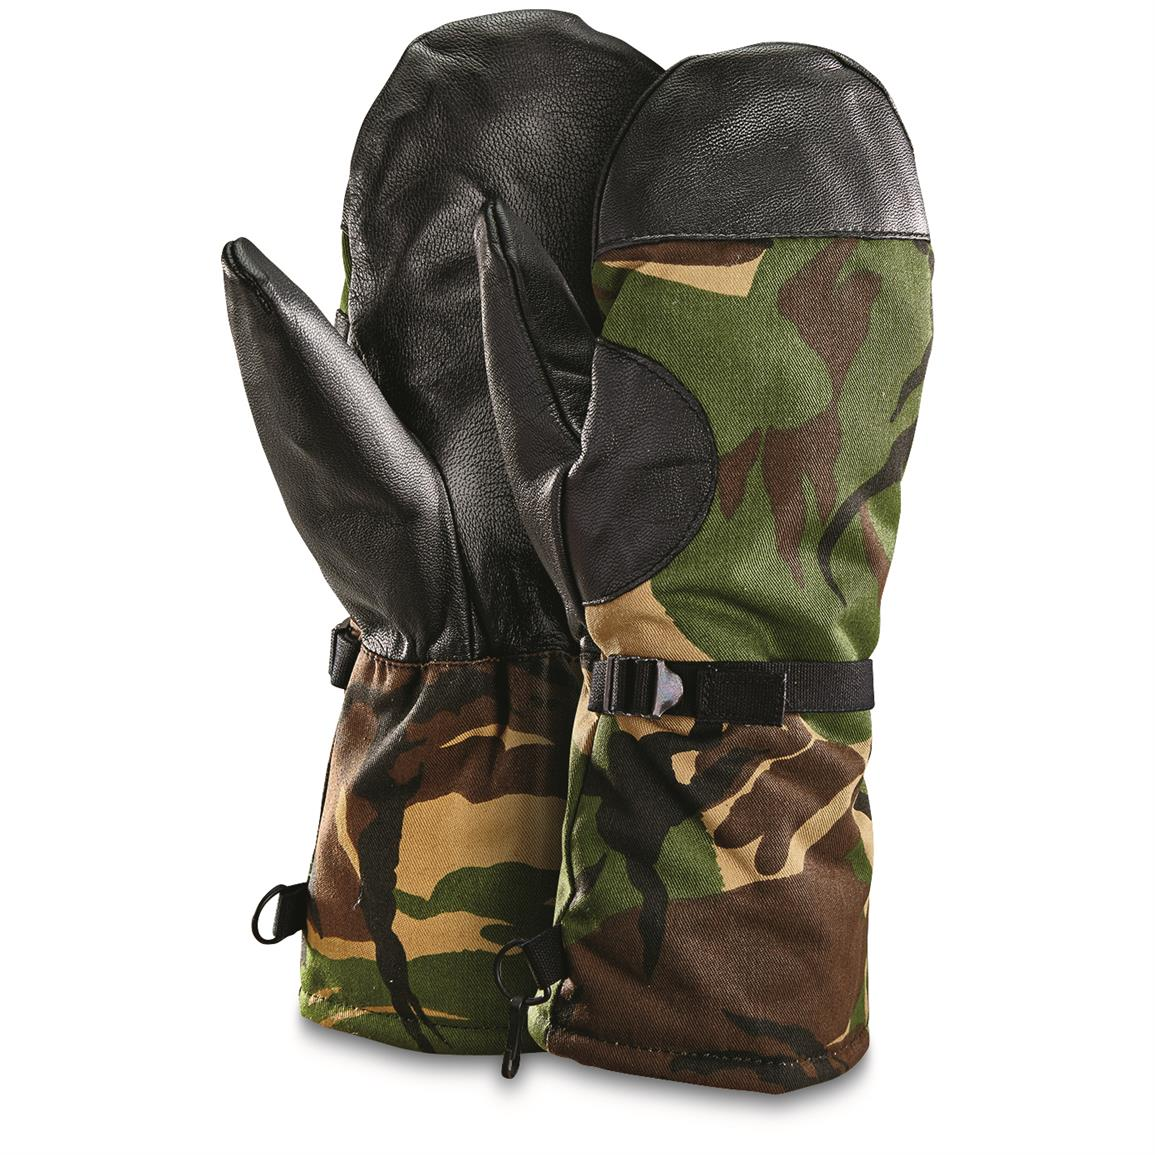 Dutch Military Surplus Mitts, 2 Pack, New